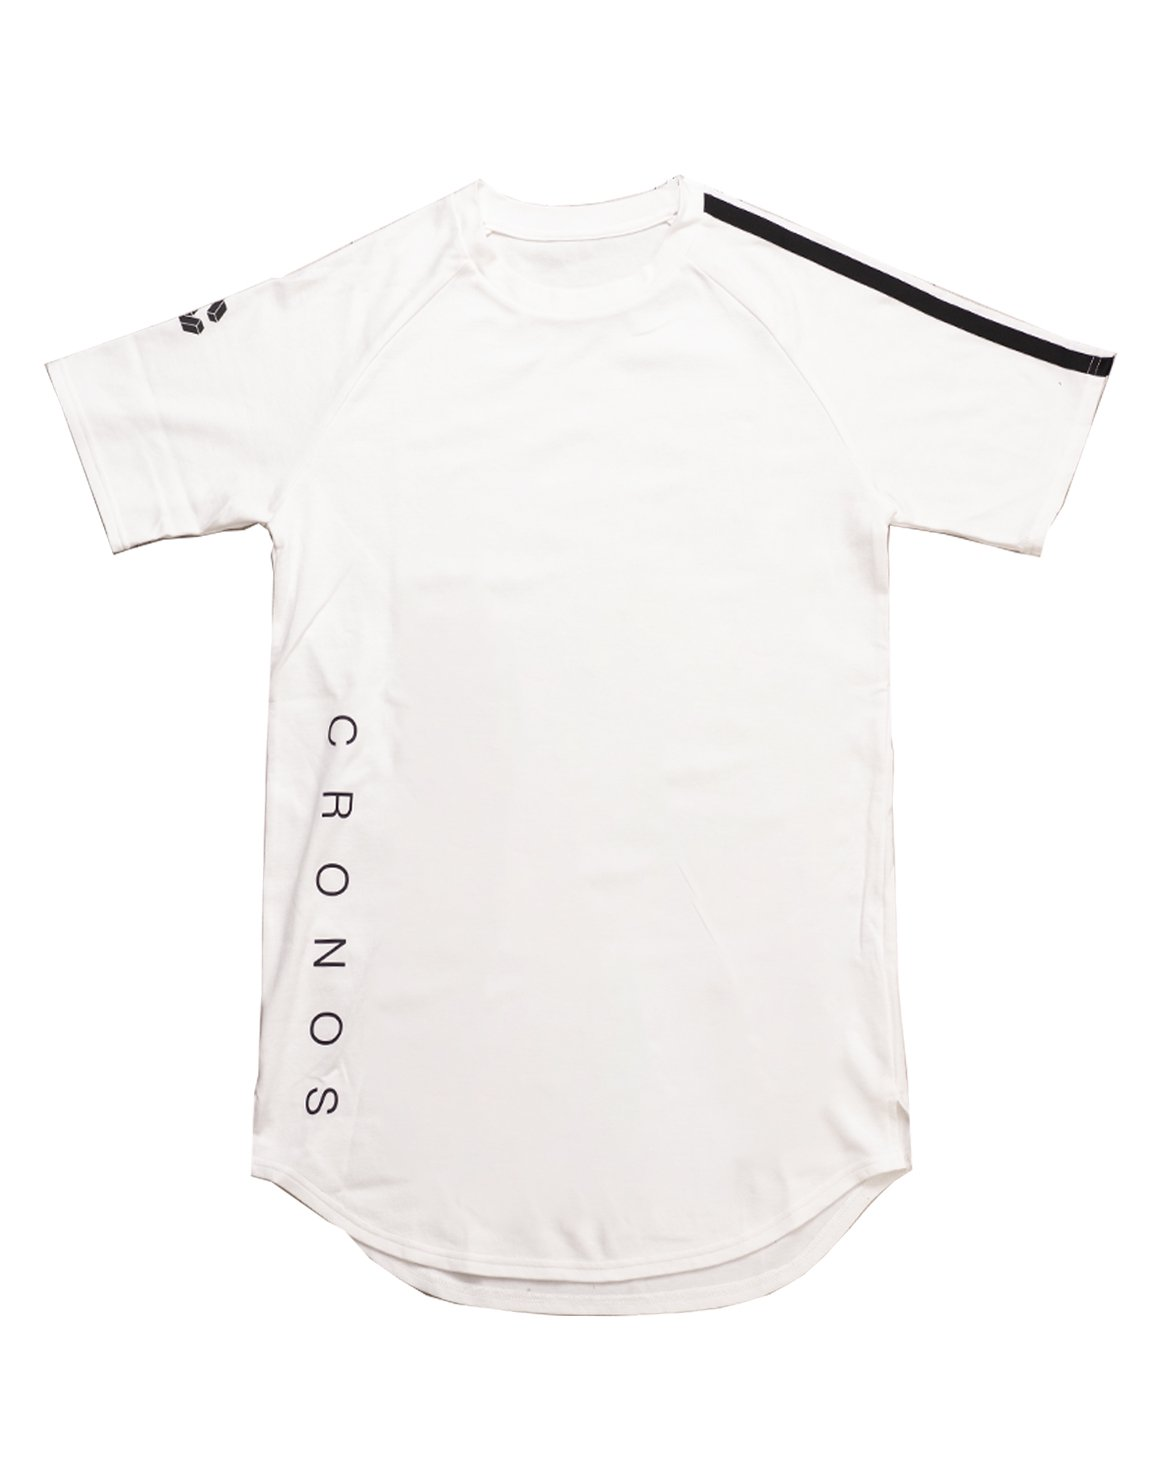 <img class='new_mark_img1' src='https://img.shop-pro.jp/img/new/icons55.gif' style='border:none;display:inline;margin:0px;padding:0px;width:auto;' />CRONOS SHOULDER TWO LINE T-SHIRTS【WHITE】